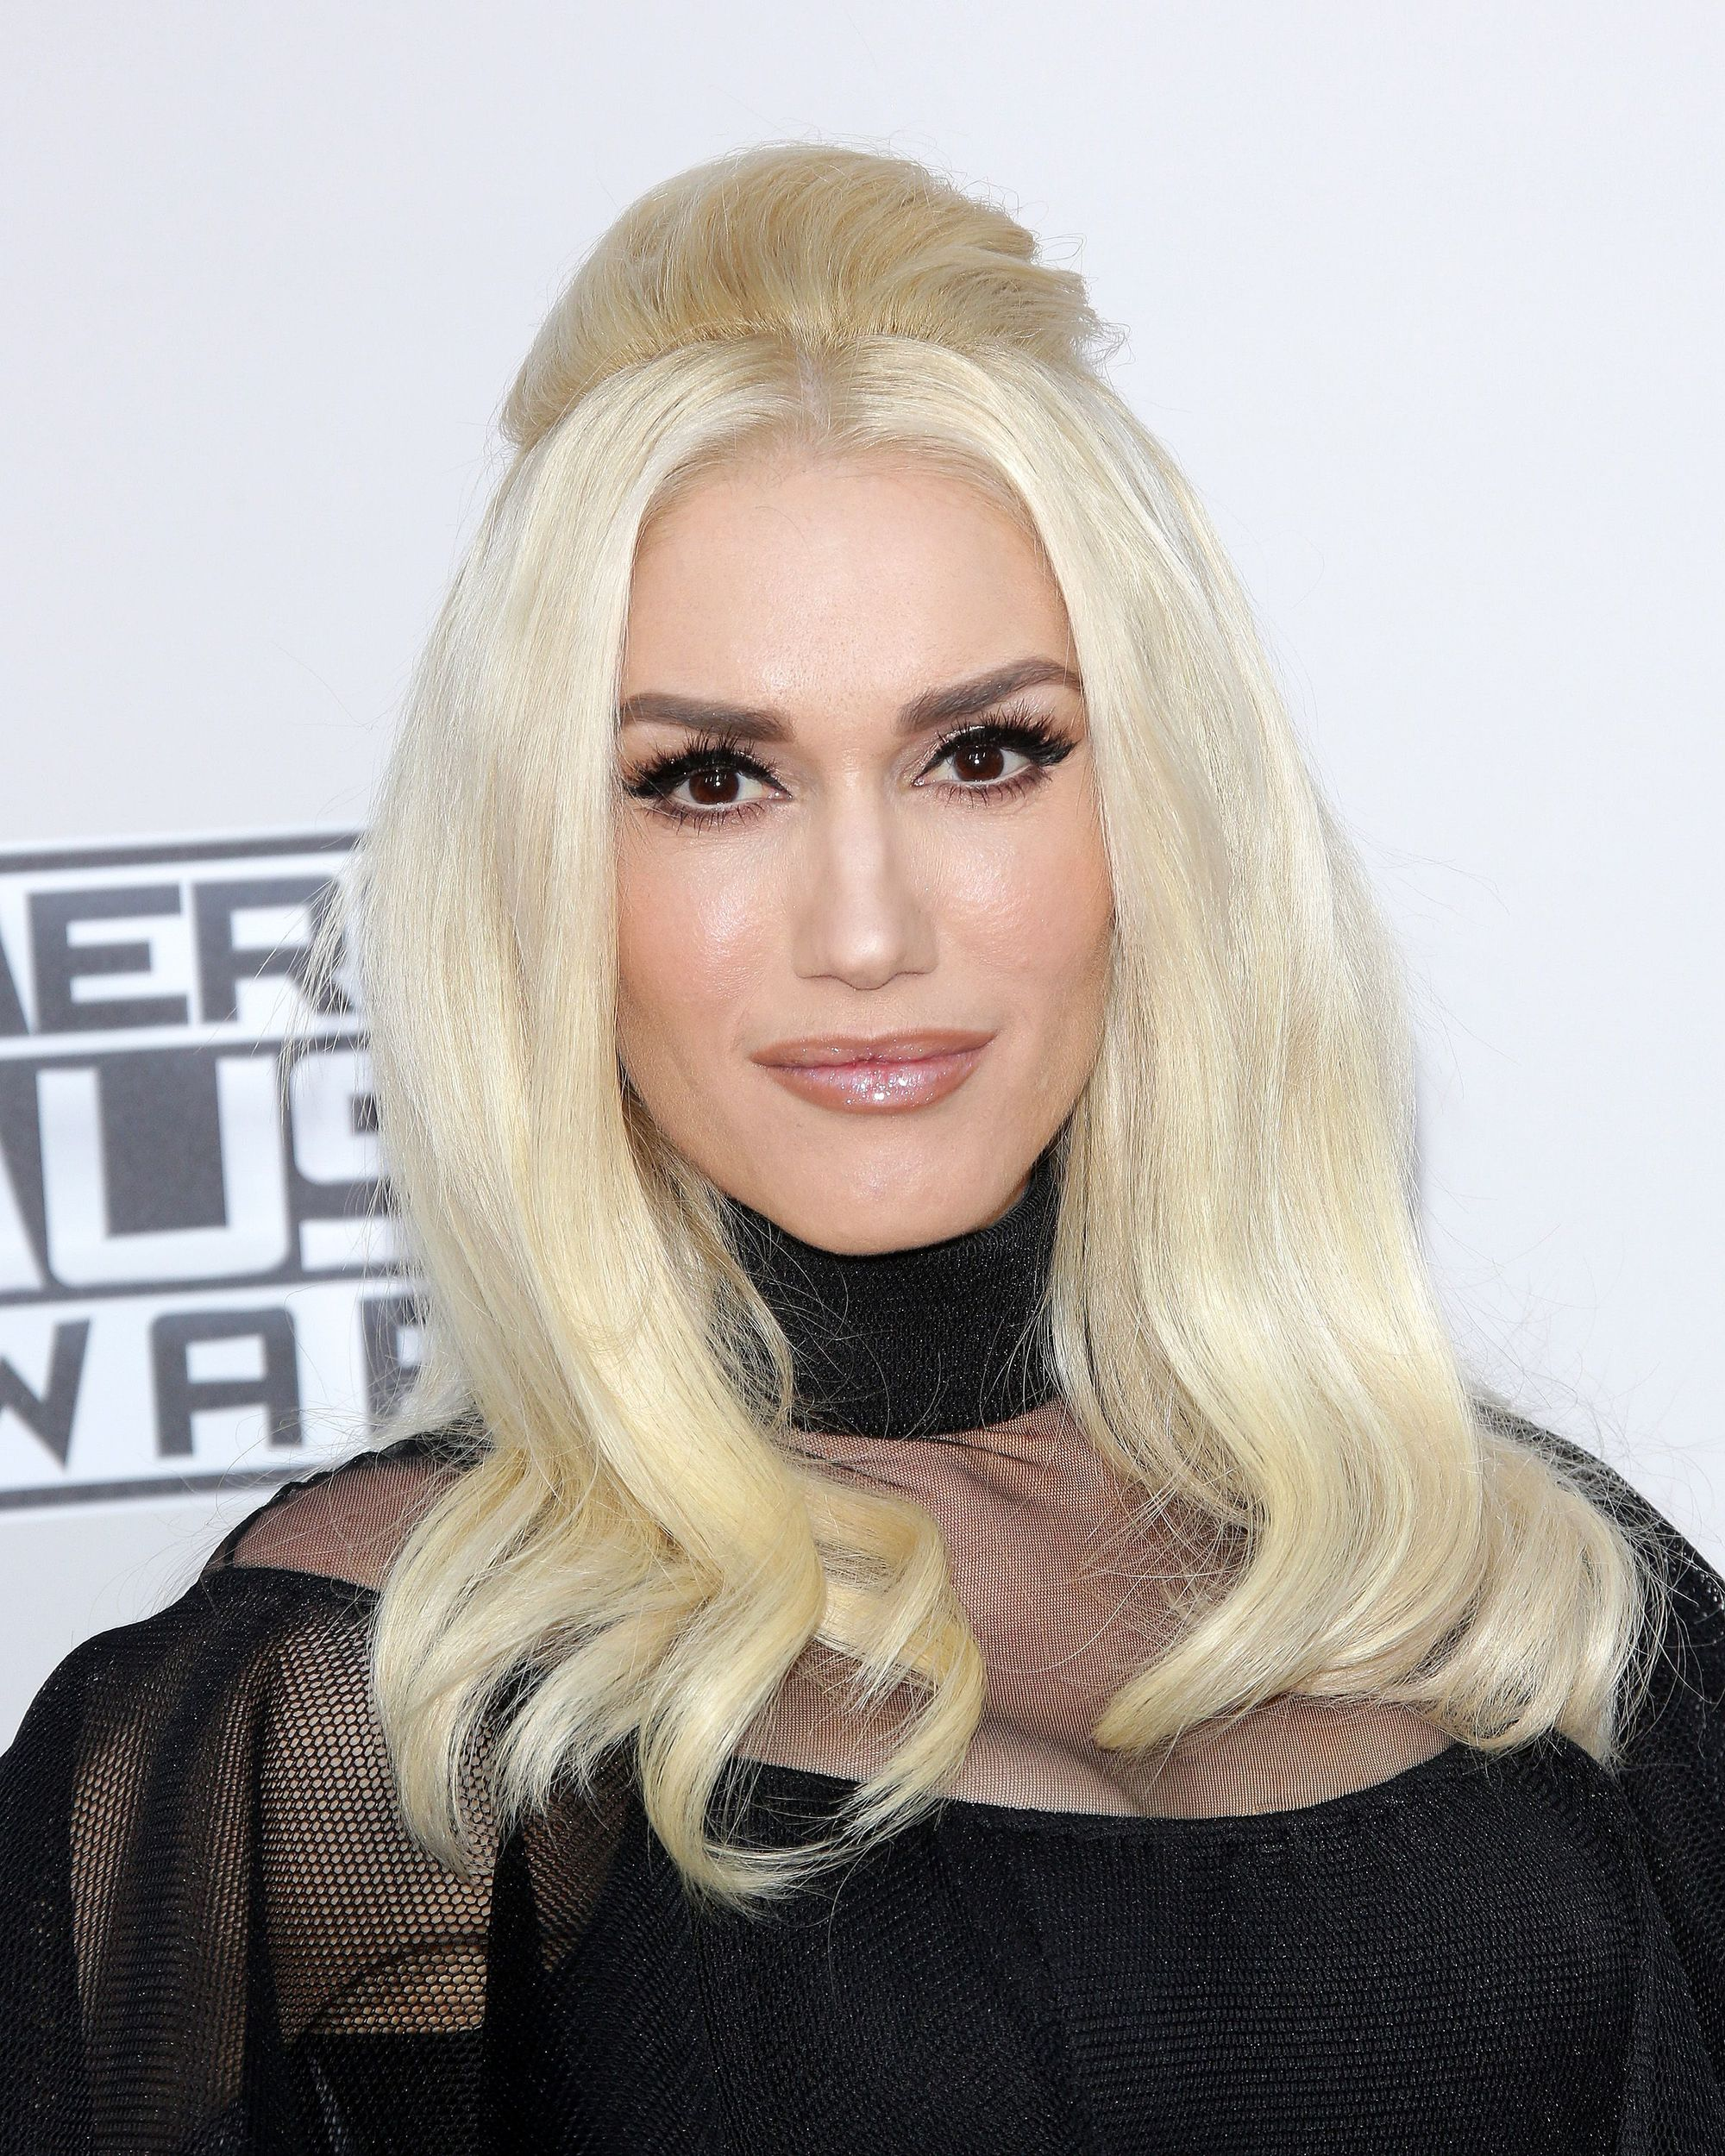 Gwen Stefani medium length platinum blonde hair in half-up, half-down style